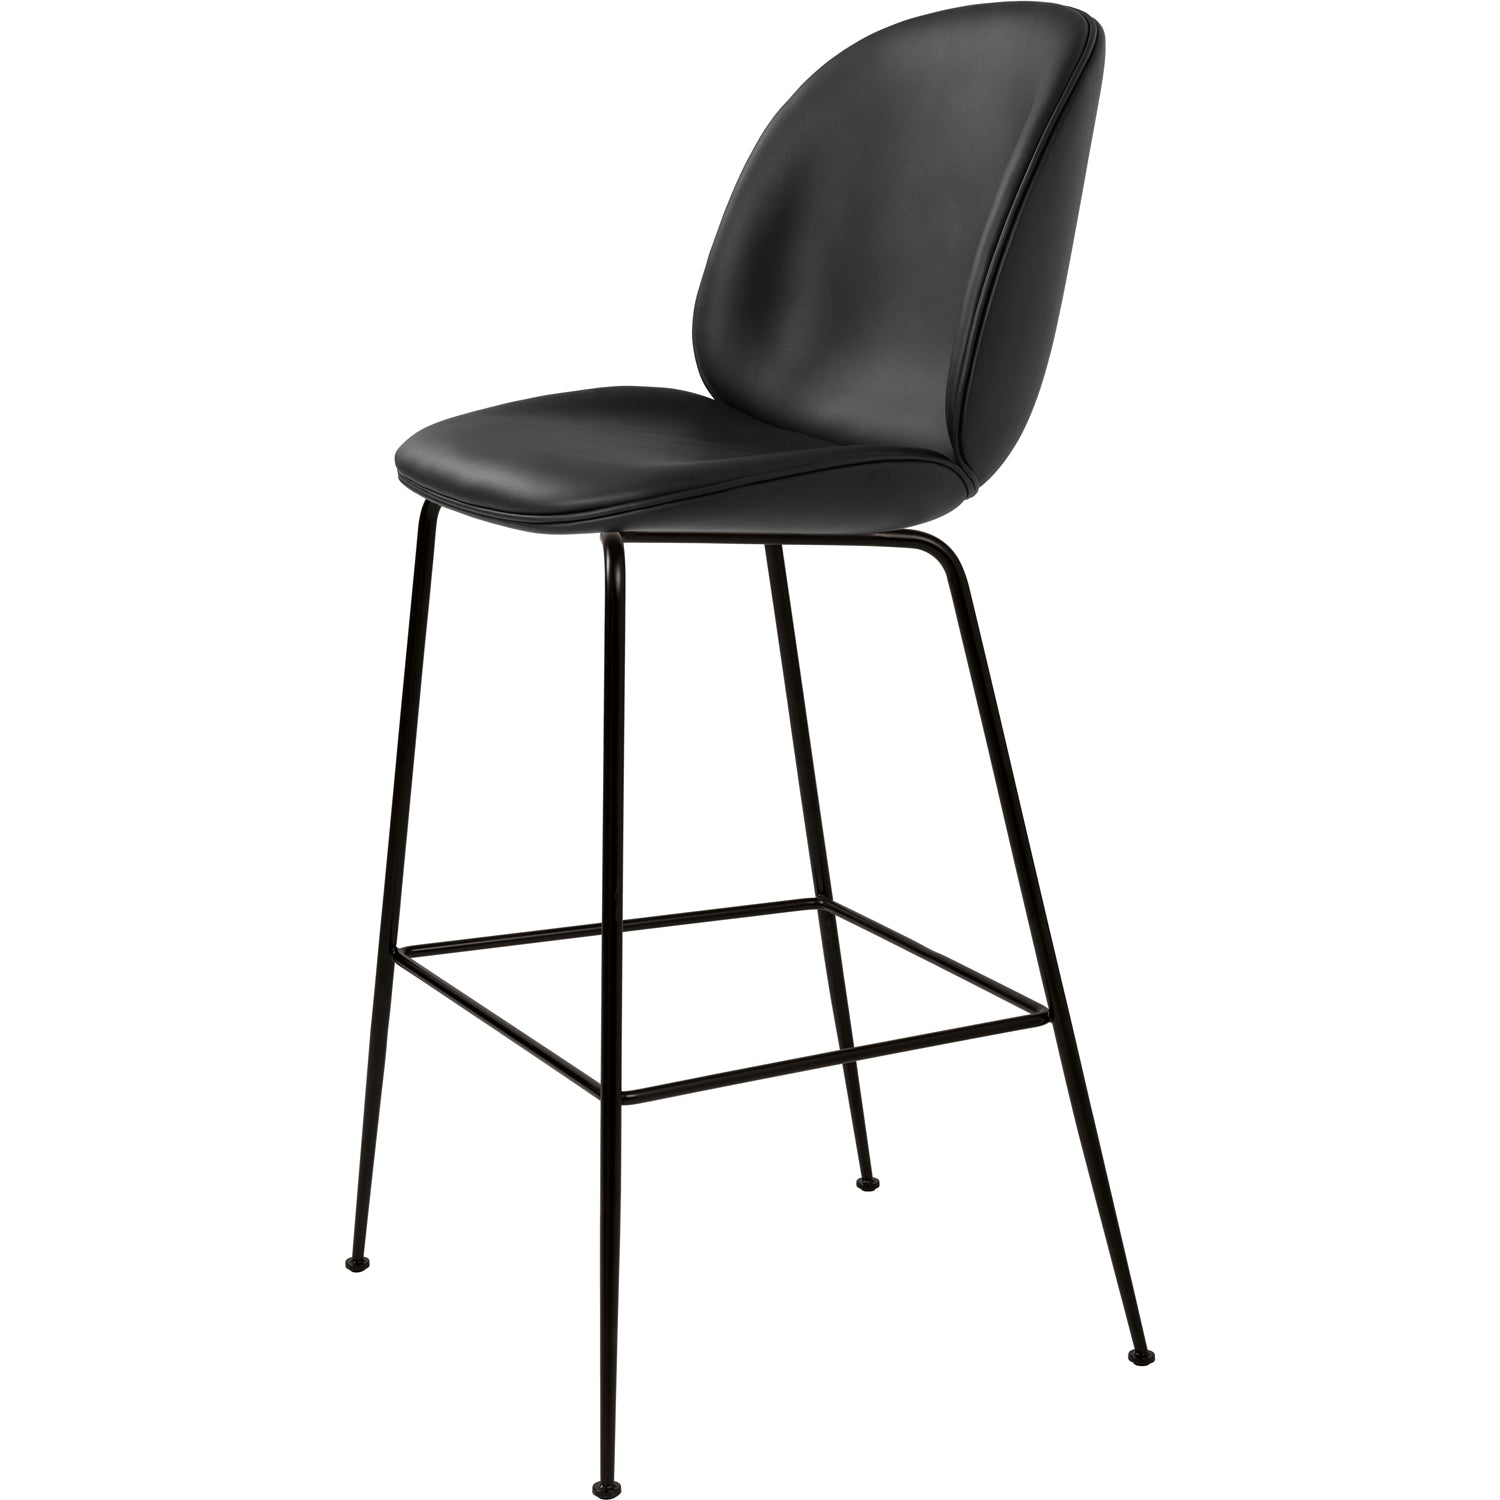 Beetle Bar/Counter Chair - Leather Upholstery - Kelato Beige SIK10419 / Matching Chair Upholstery / Black